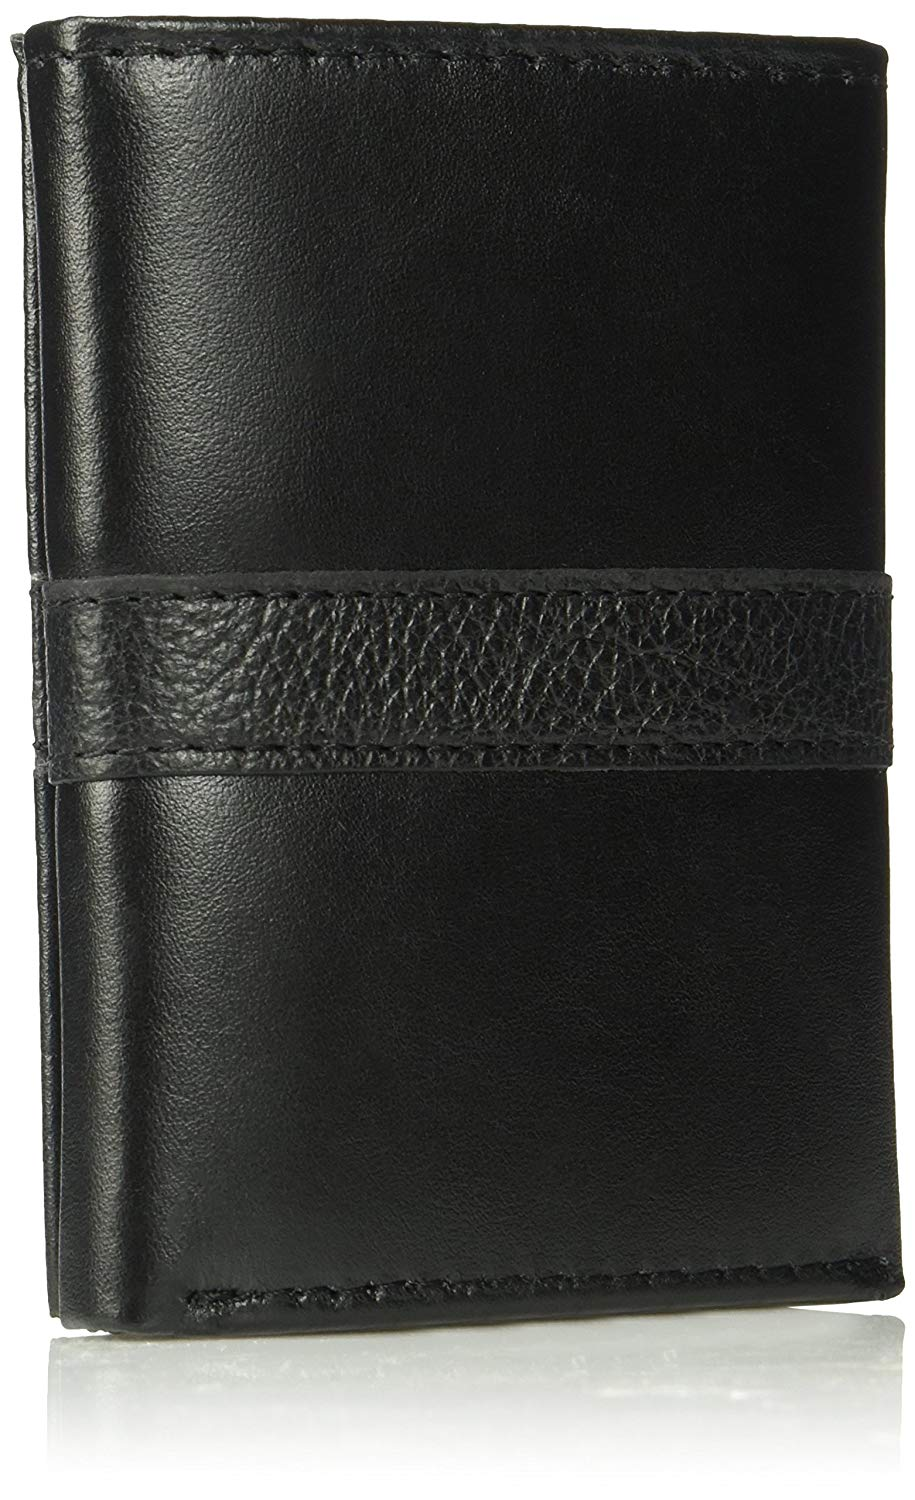 Tommy-Hilfiger-Men-039-s-RFID-Blocking-Leather-Ranger-Extra-Capacity-Trifold-Wallet thumbnail 7